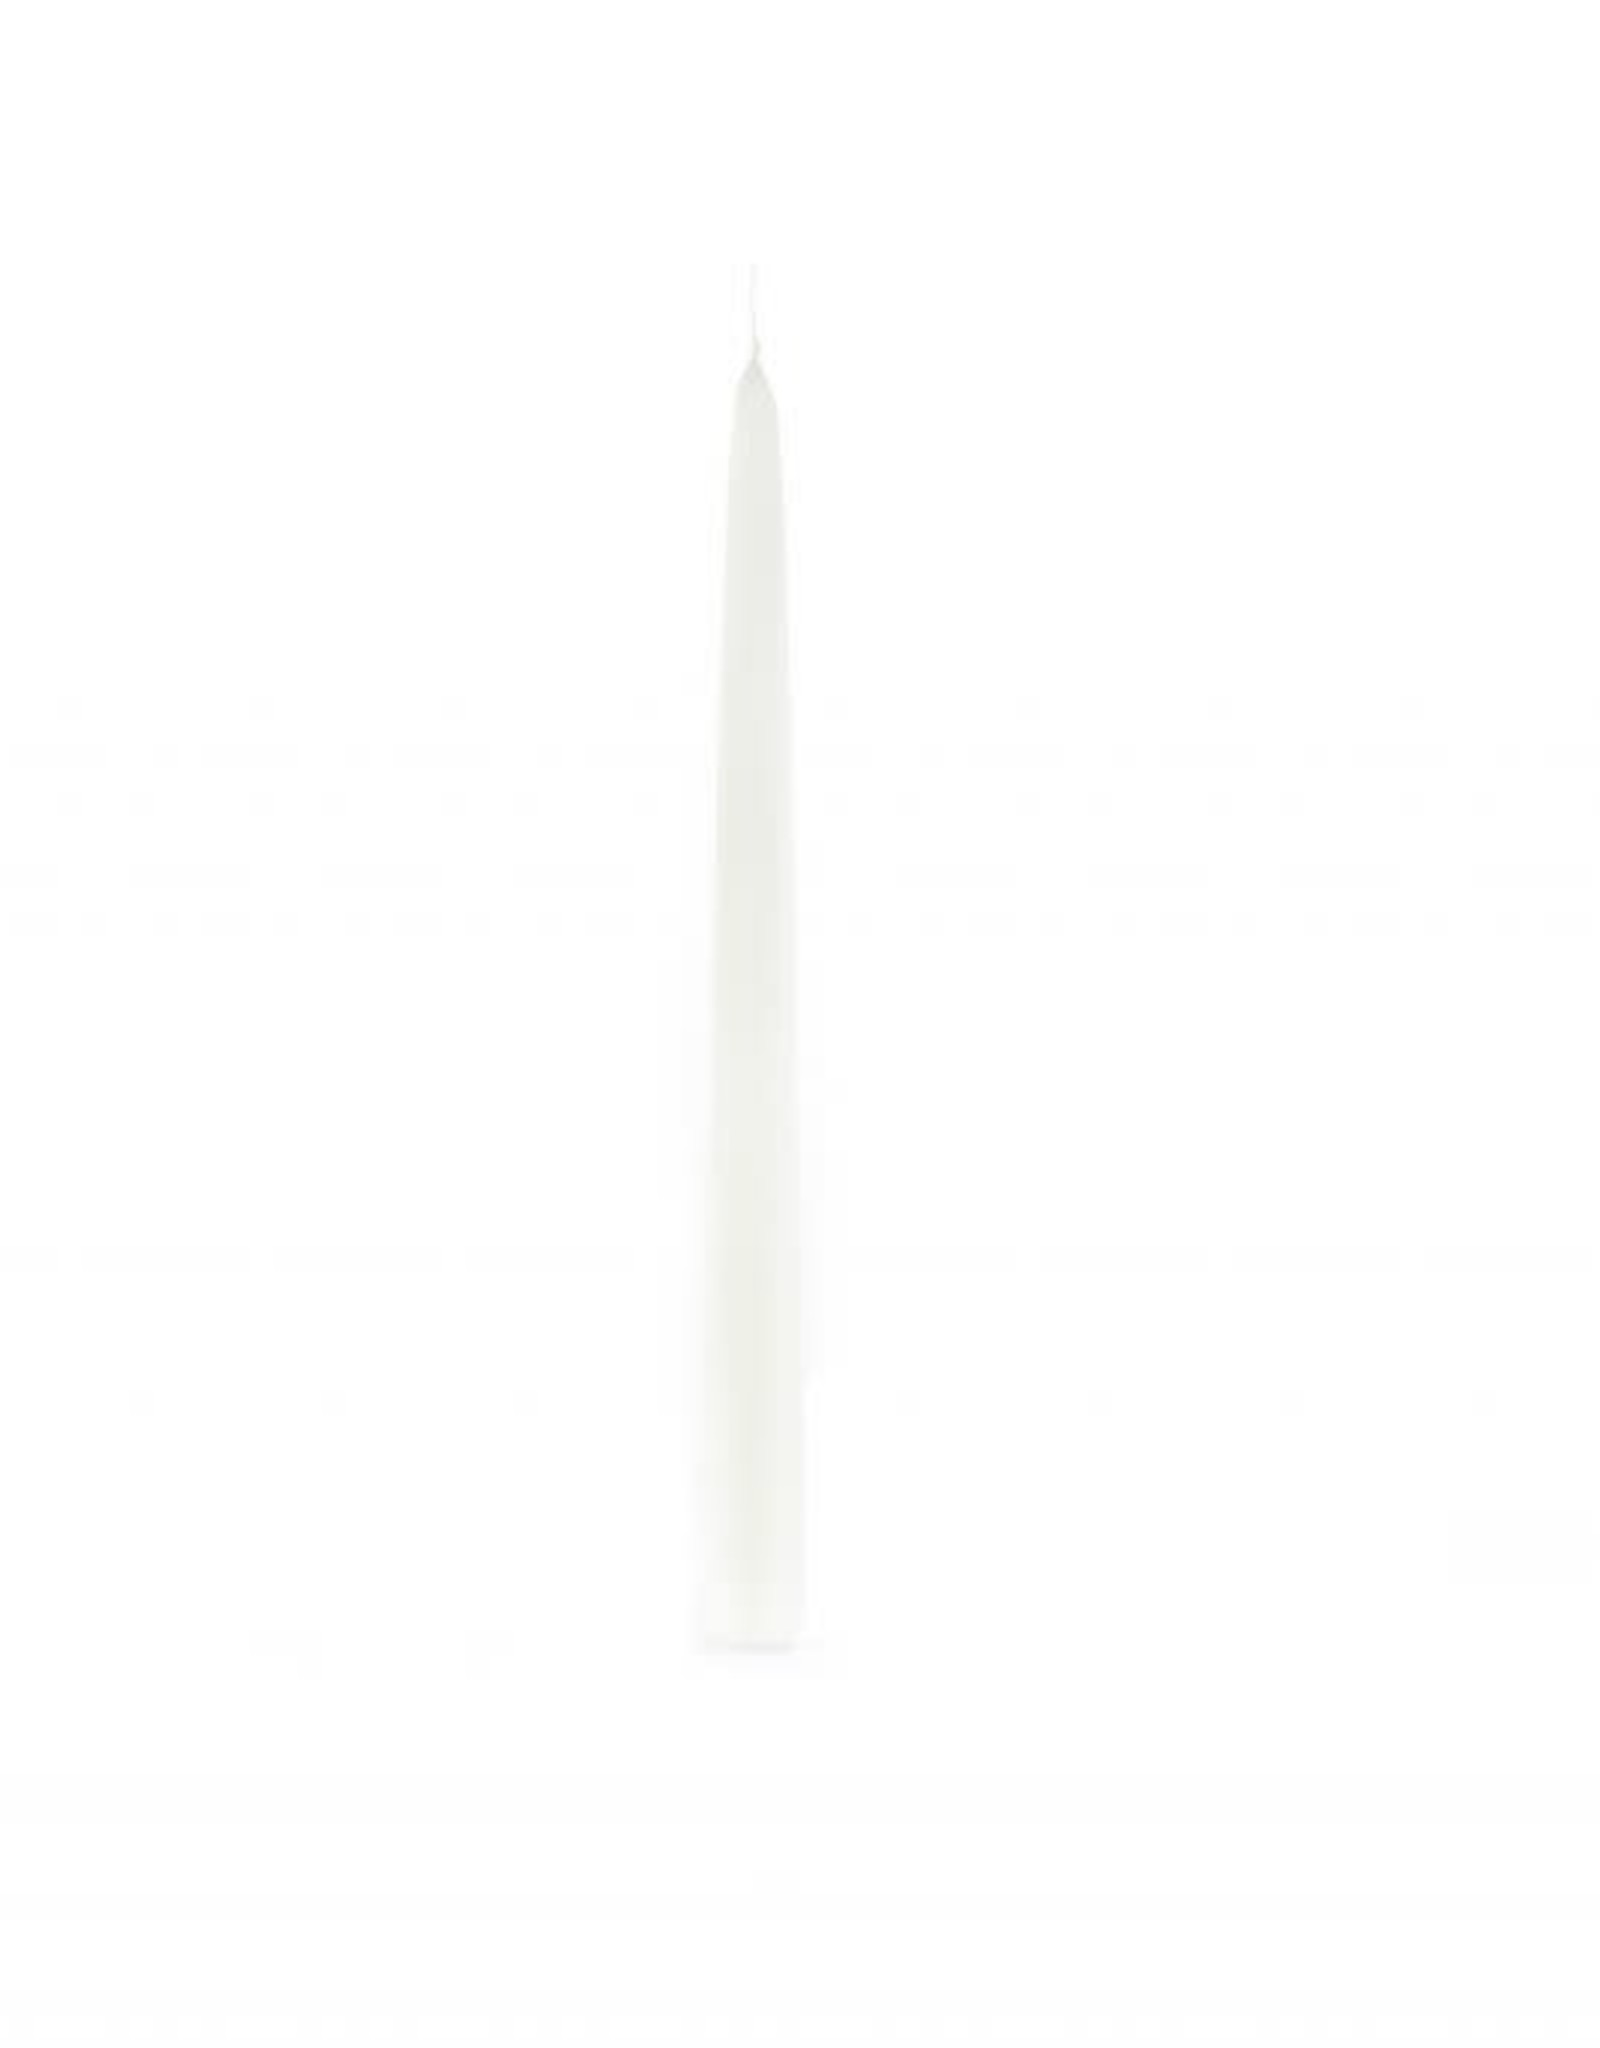 Chandelles Tradition / Tradition Candles White Taper Candle